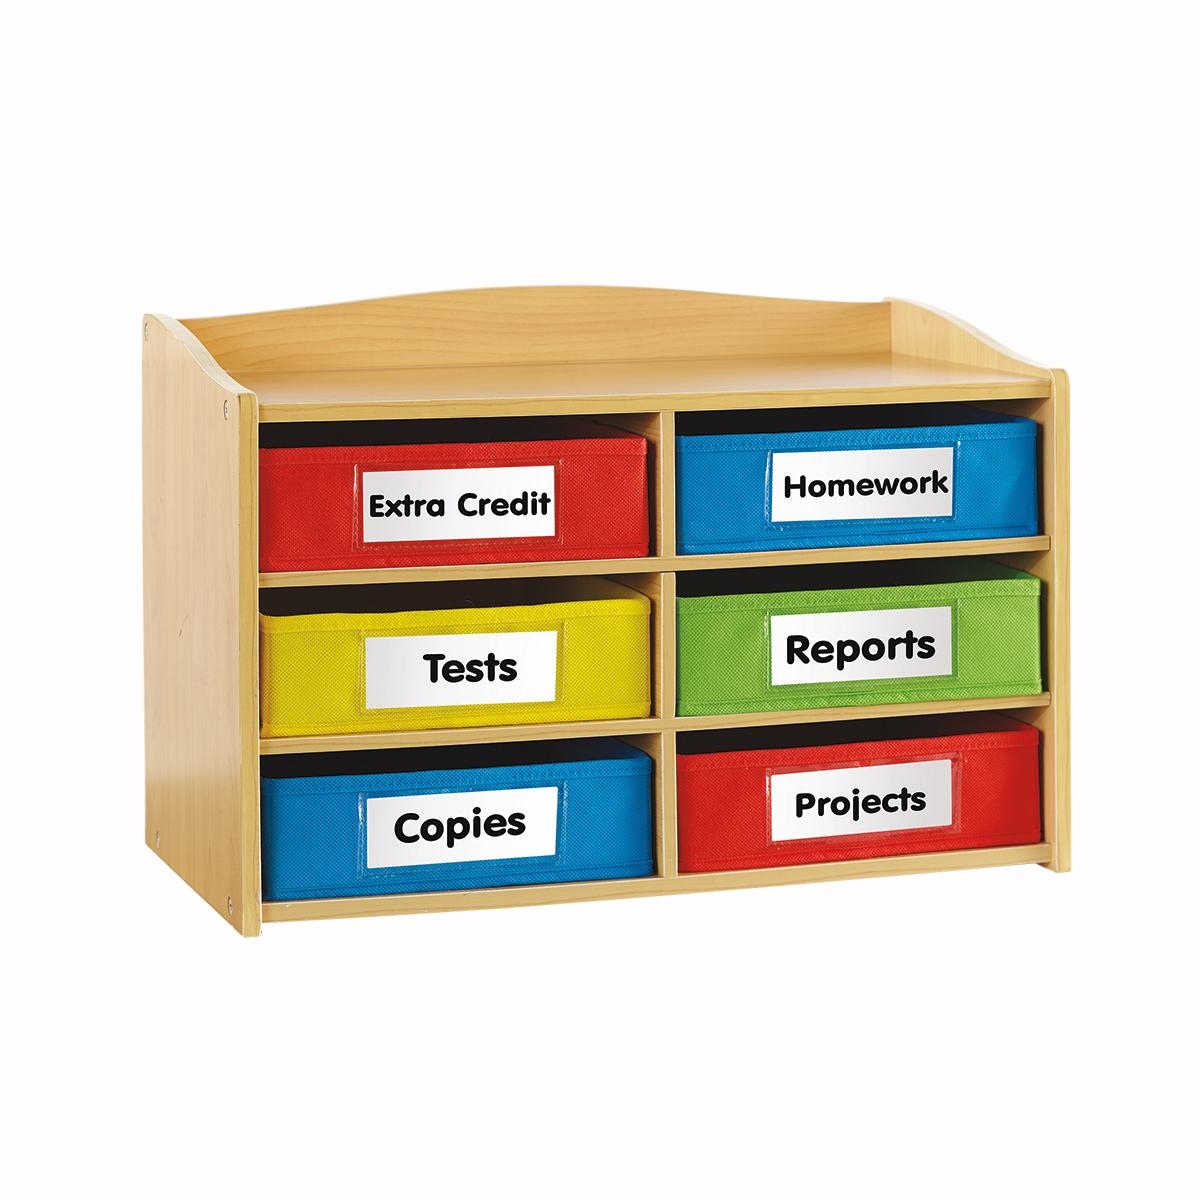 Teacher's Tabletop Desk Organizer